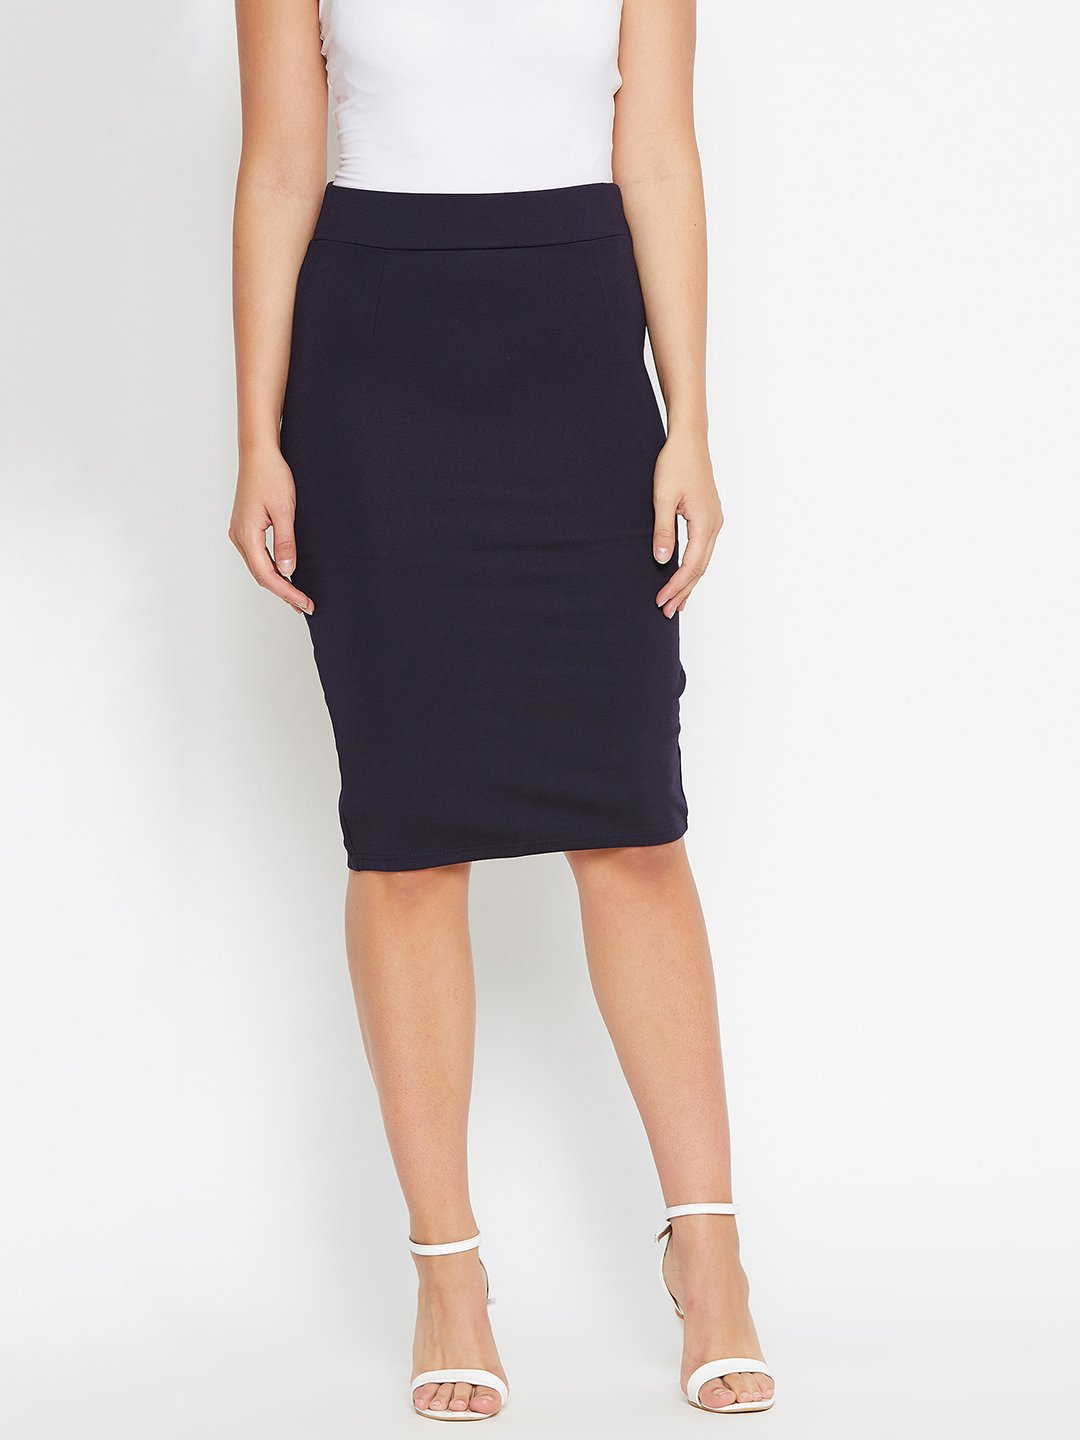 Castle Navy Blue Solid Knee Length Pencil Skirt